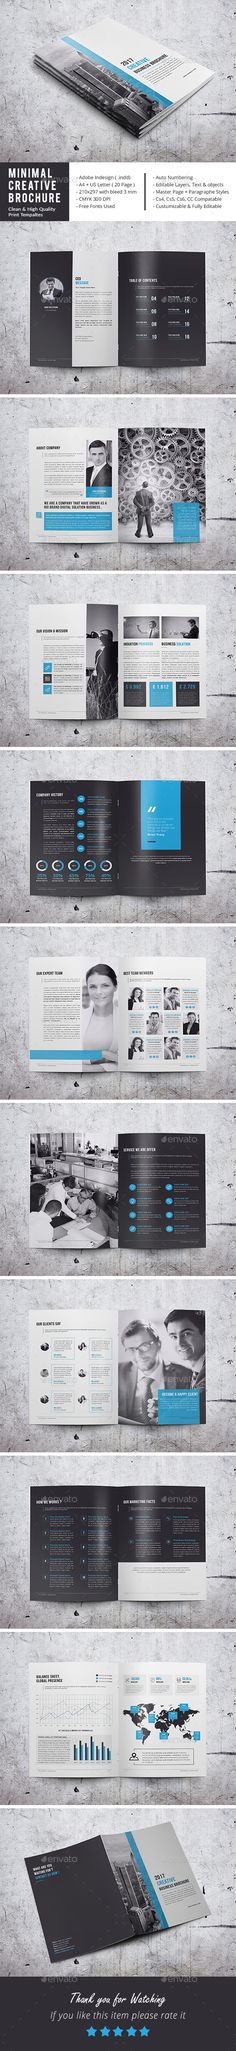 Minimal Corporate Brochure by adobemouad Minimal Corporate Brochure This InDesign Brochure is Clean & Porfessional. Create your company鈥檚 documentation quick and easy. Indesign Brochure Templates, Travel Brochure Template, Brochure Layout, Corporate Brochure, Business Brochure, Brochure Design, Branding Design, Book Design, Layout Design